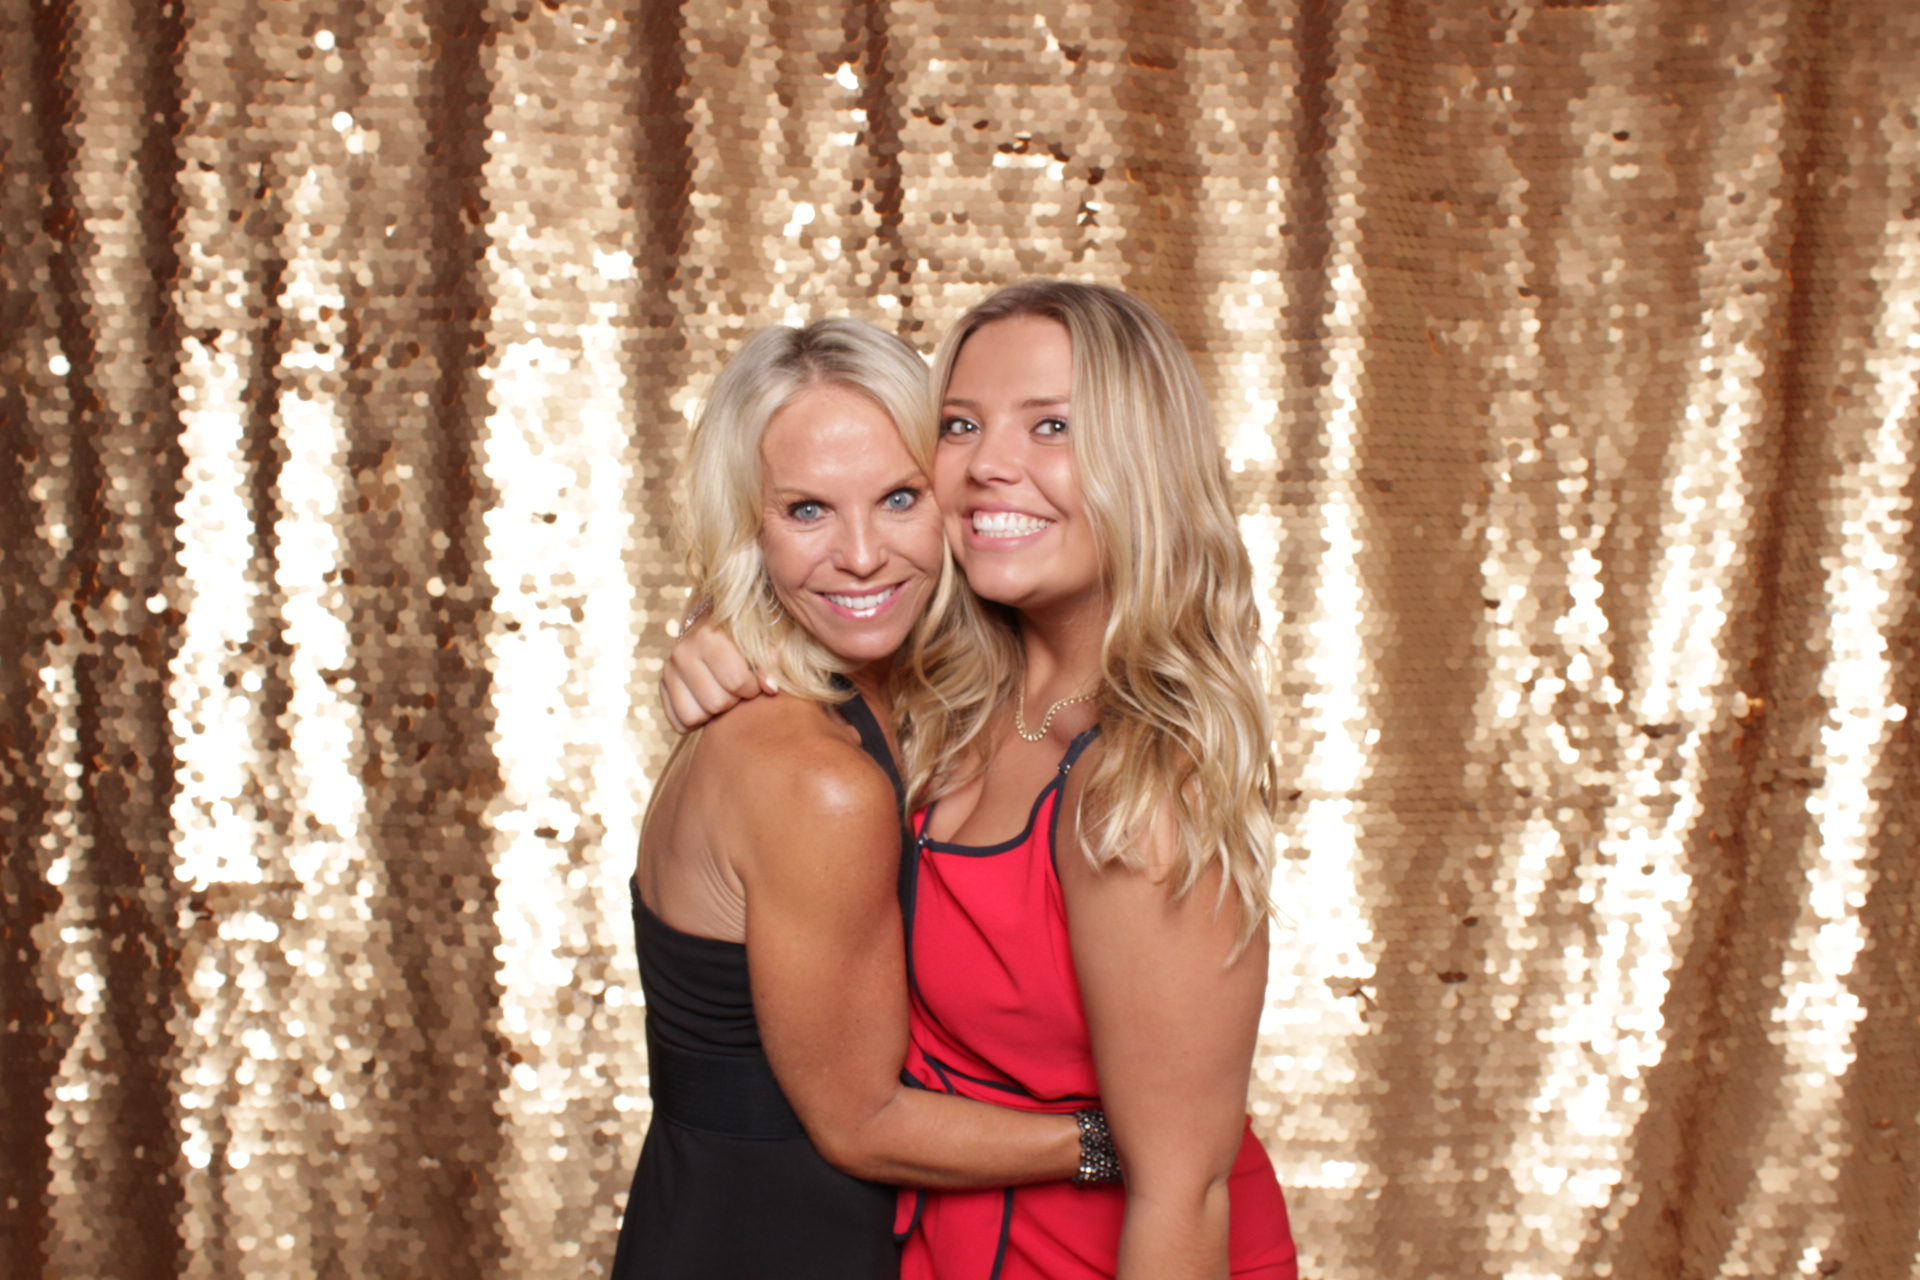 Minneapolis_St Paul_Photo_Booths_Weddings (1).jpg